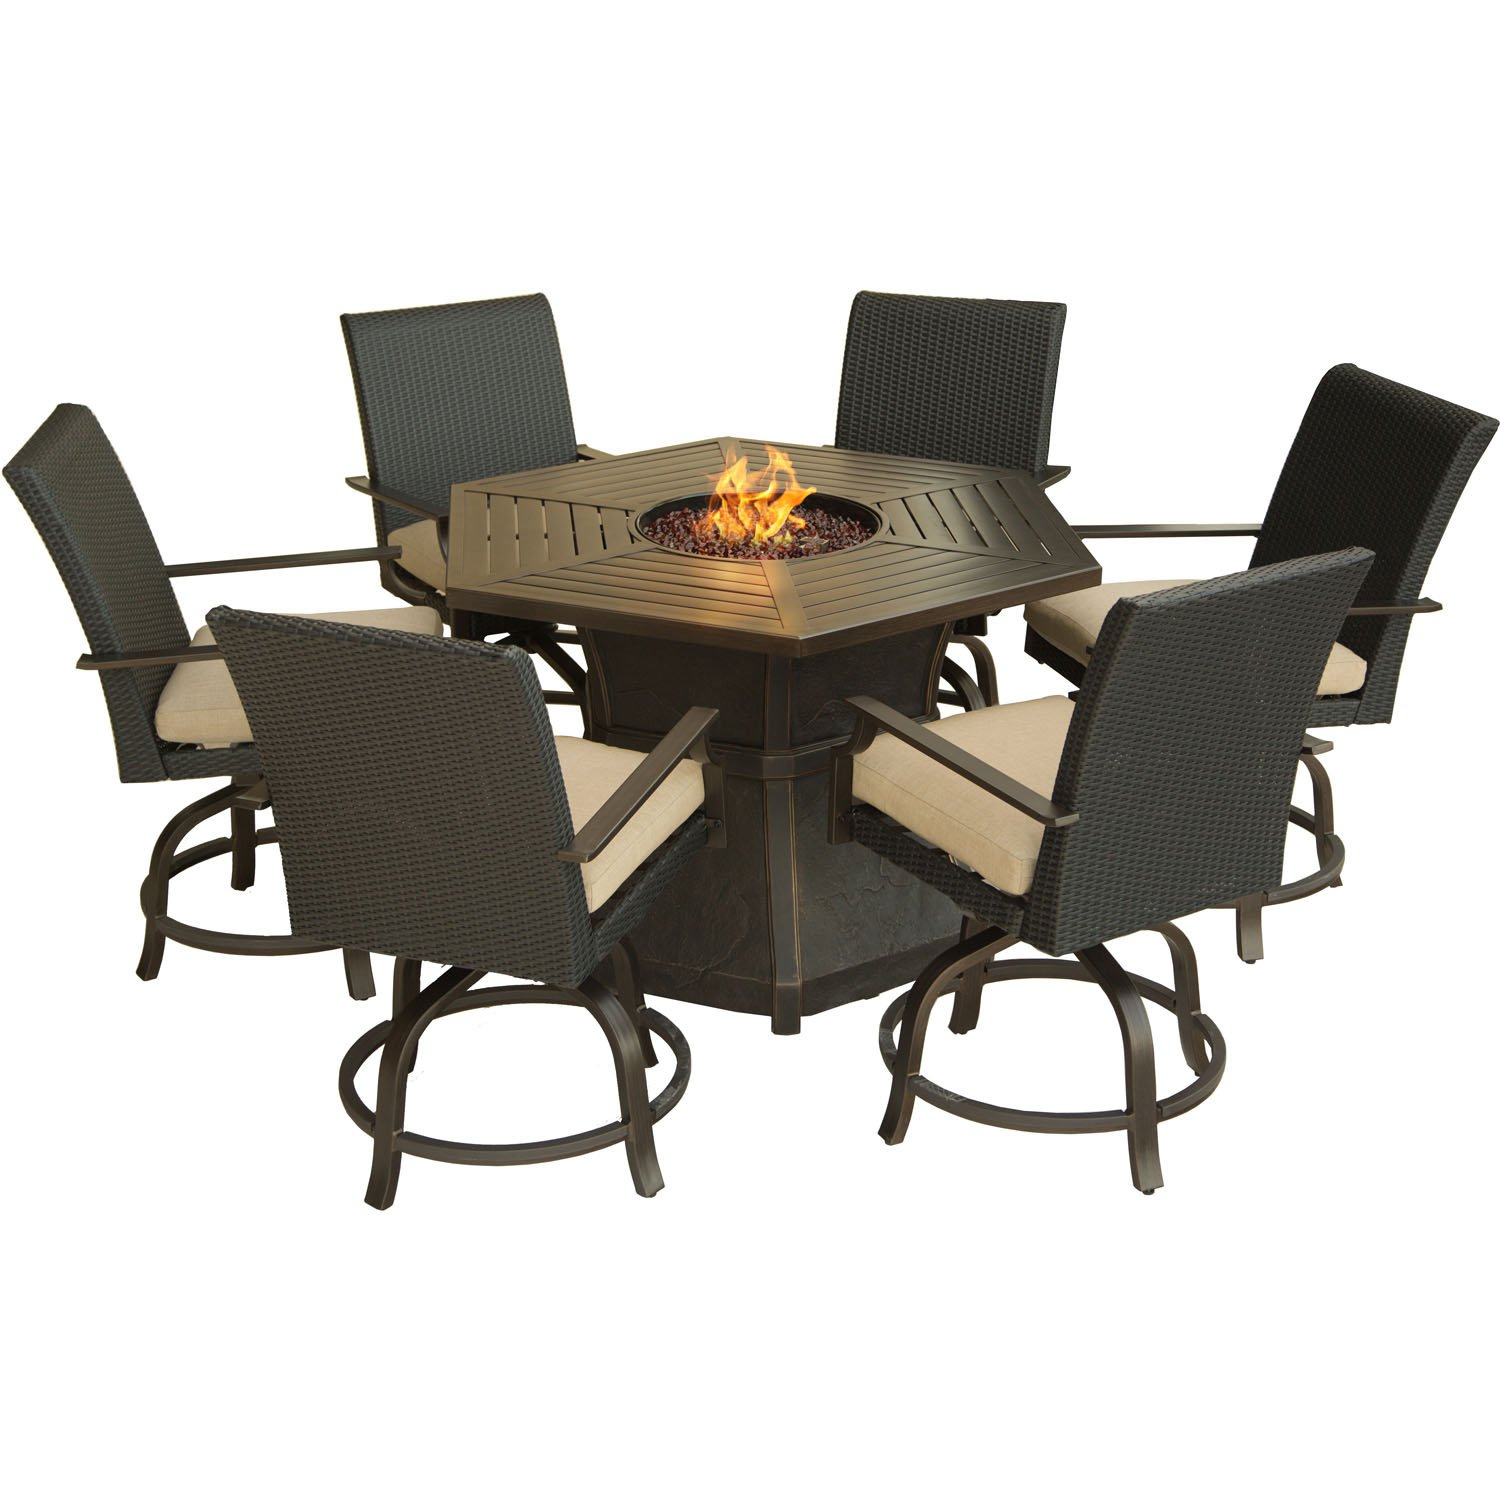 Amazon.com: Hanover Aspen Creek 7 Piece Fire Pit Dining Set: Garden U0026  Outdoor